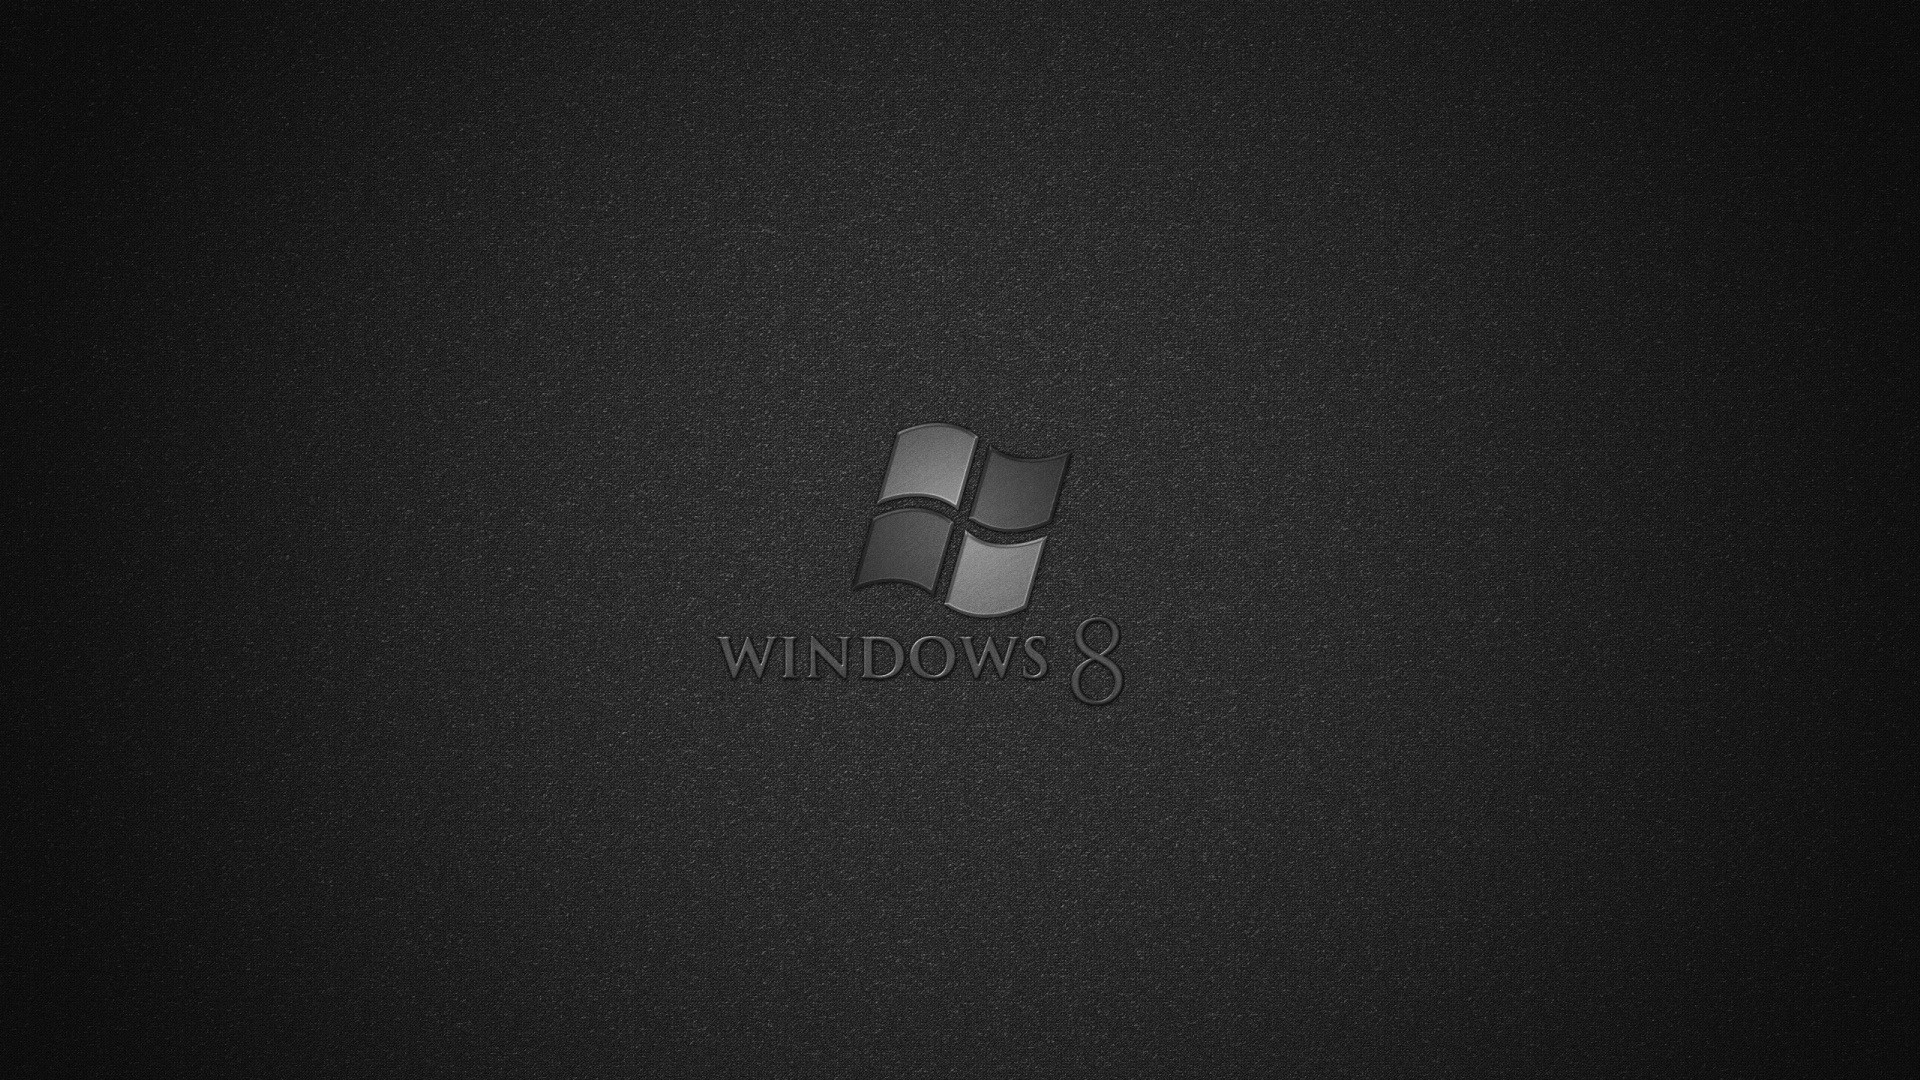 Windows 8 Black Wallpaper downloadwallpaperhdcom 1920x1080